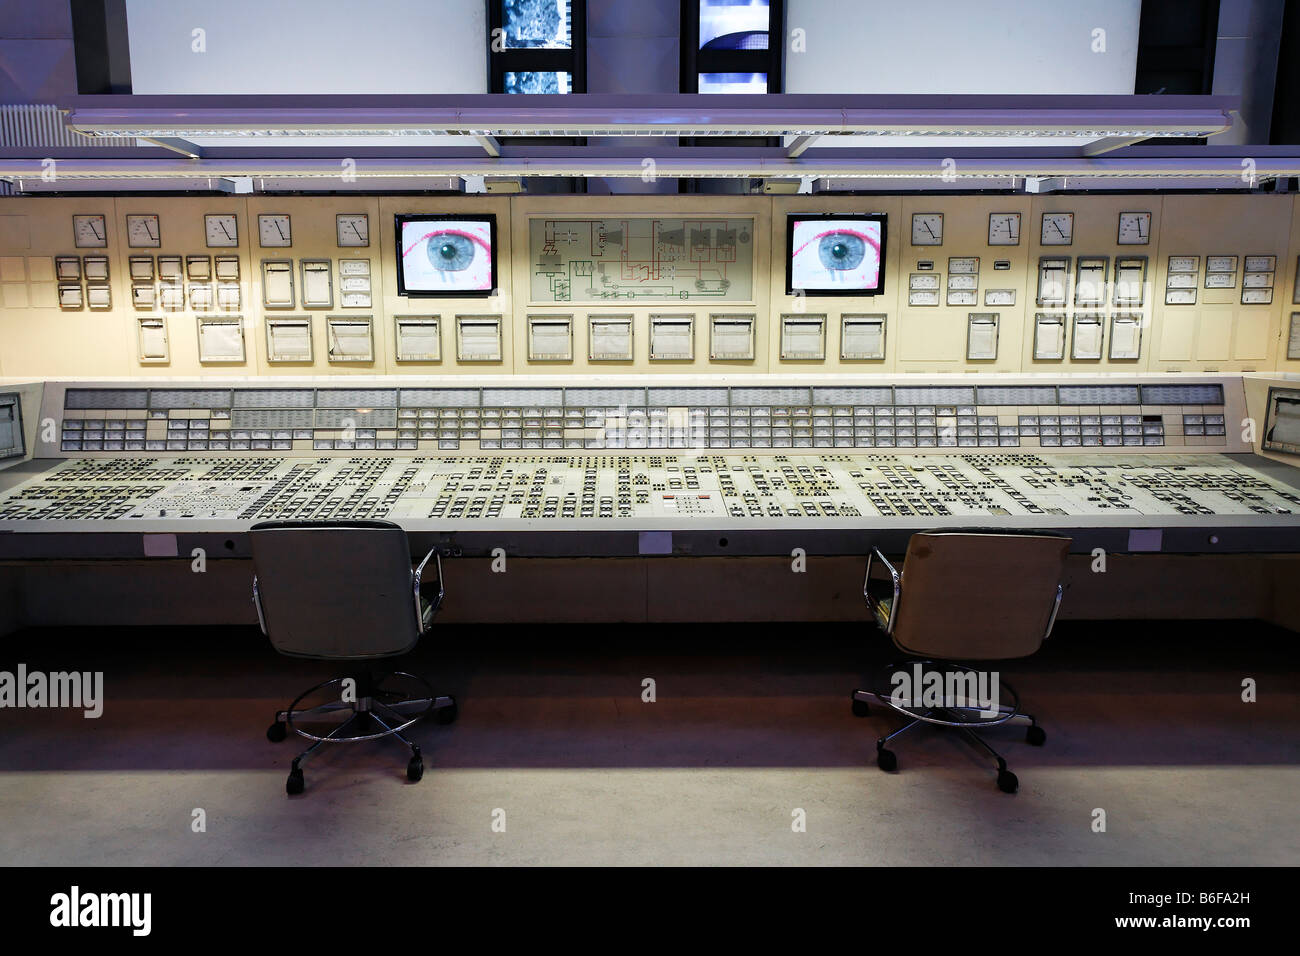 Control room of a decommissioned electric power station recreated in an exhibition hall at DASA, Deutsche Arbeitsschutzausstell Stock Photo